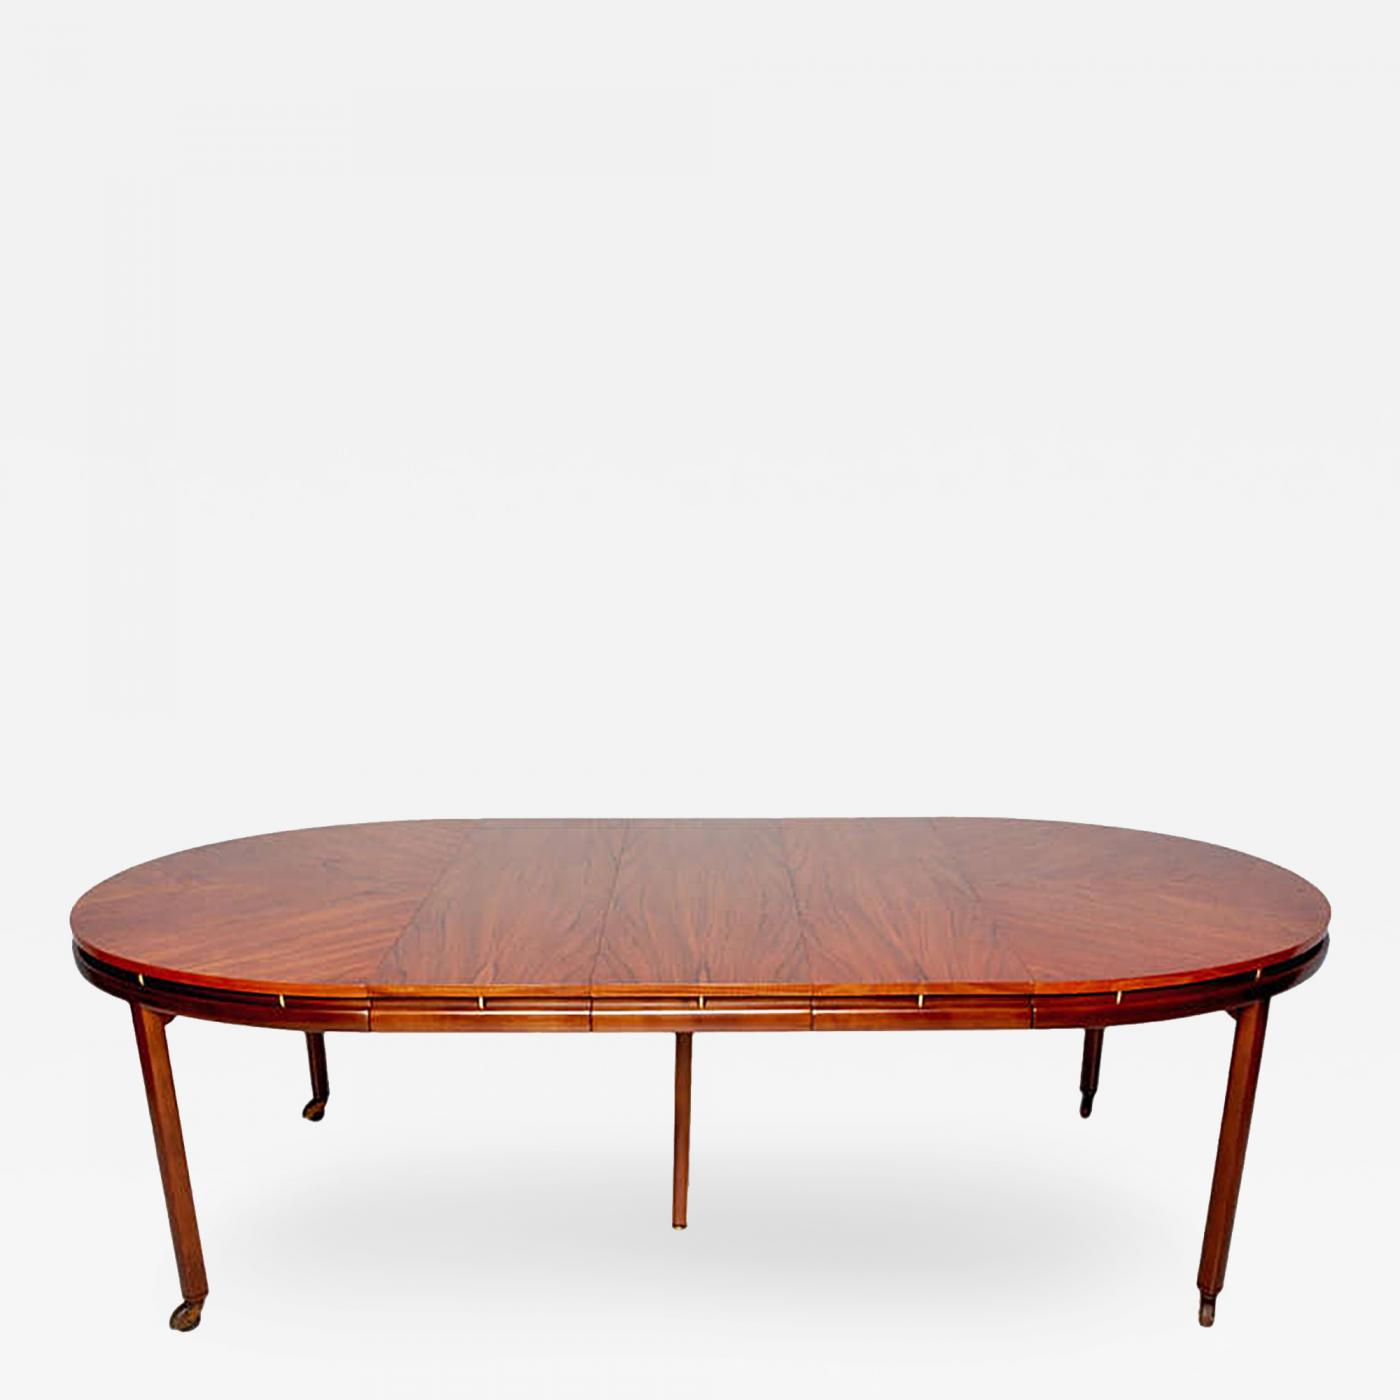 Michael Taylor Mid Century Modern Oval Dining Table by Michael